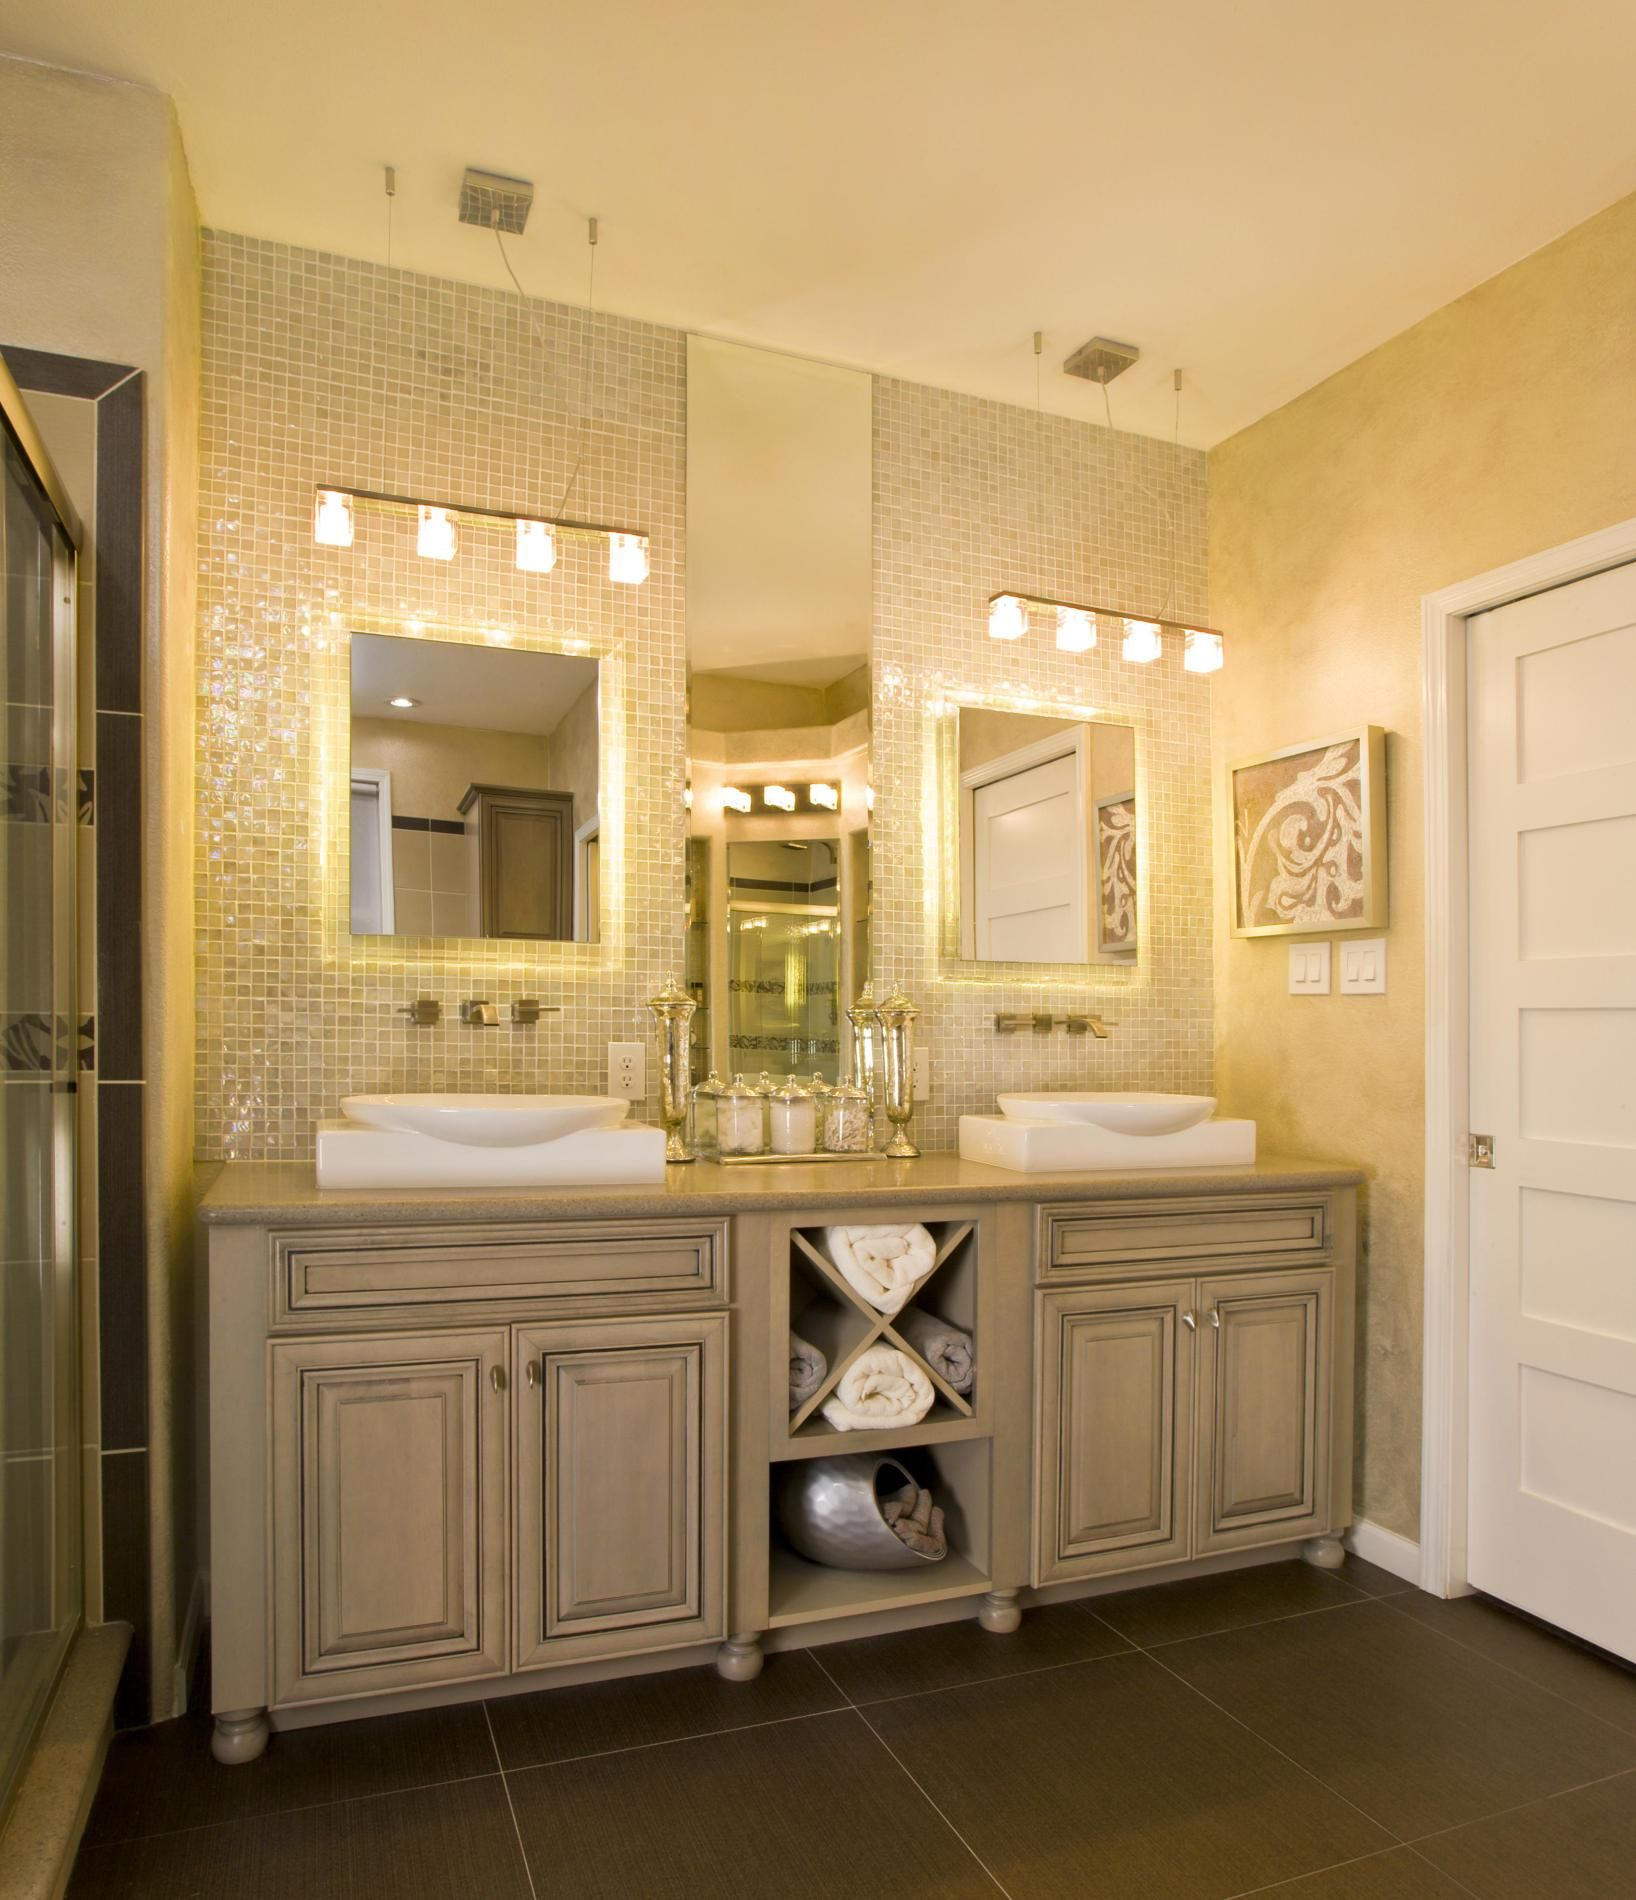 Bathroom lighting budget bathroom lighting bath lighting large bathroom vanity cabinets with double sink and lighting fixtures over mirror mozeypictures Choice Image